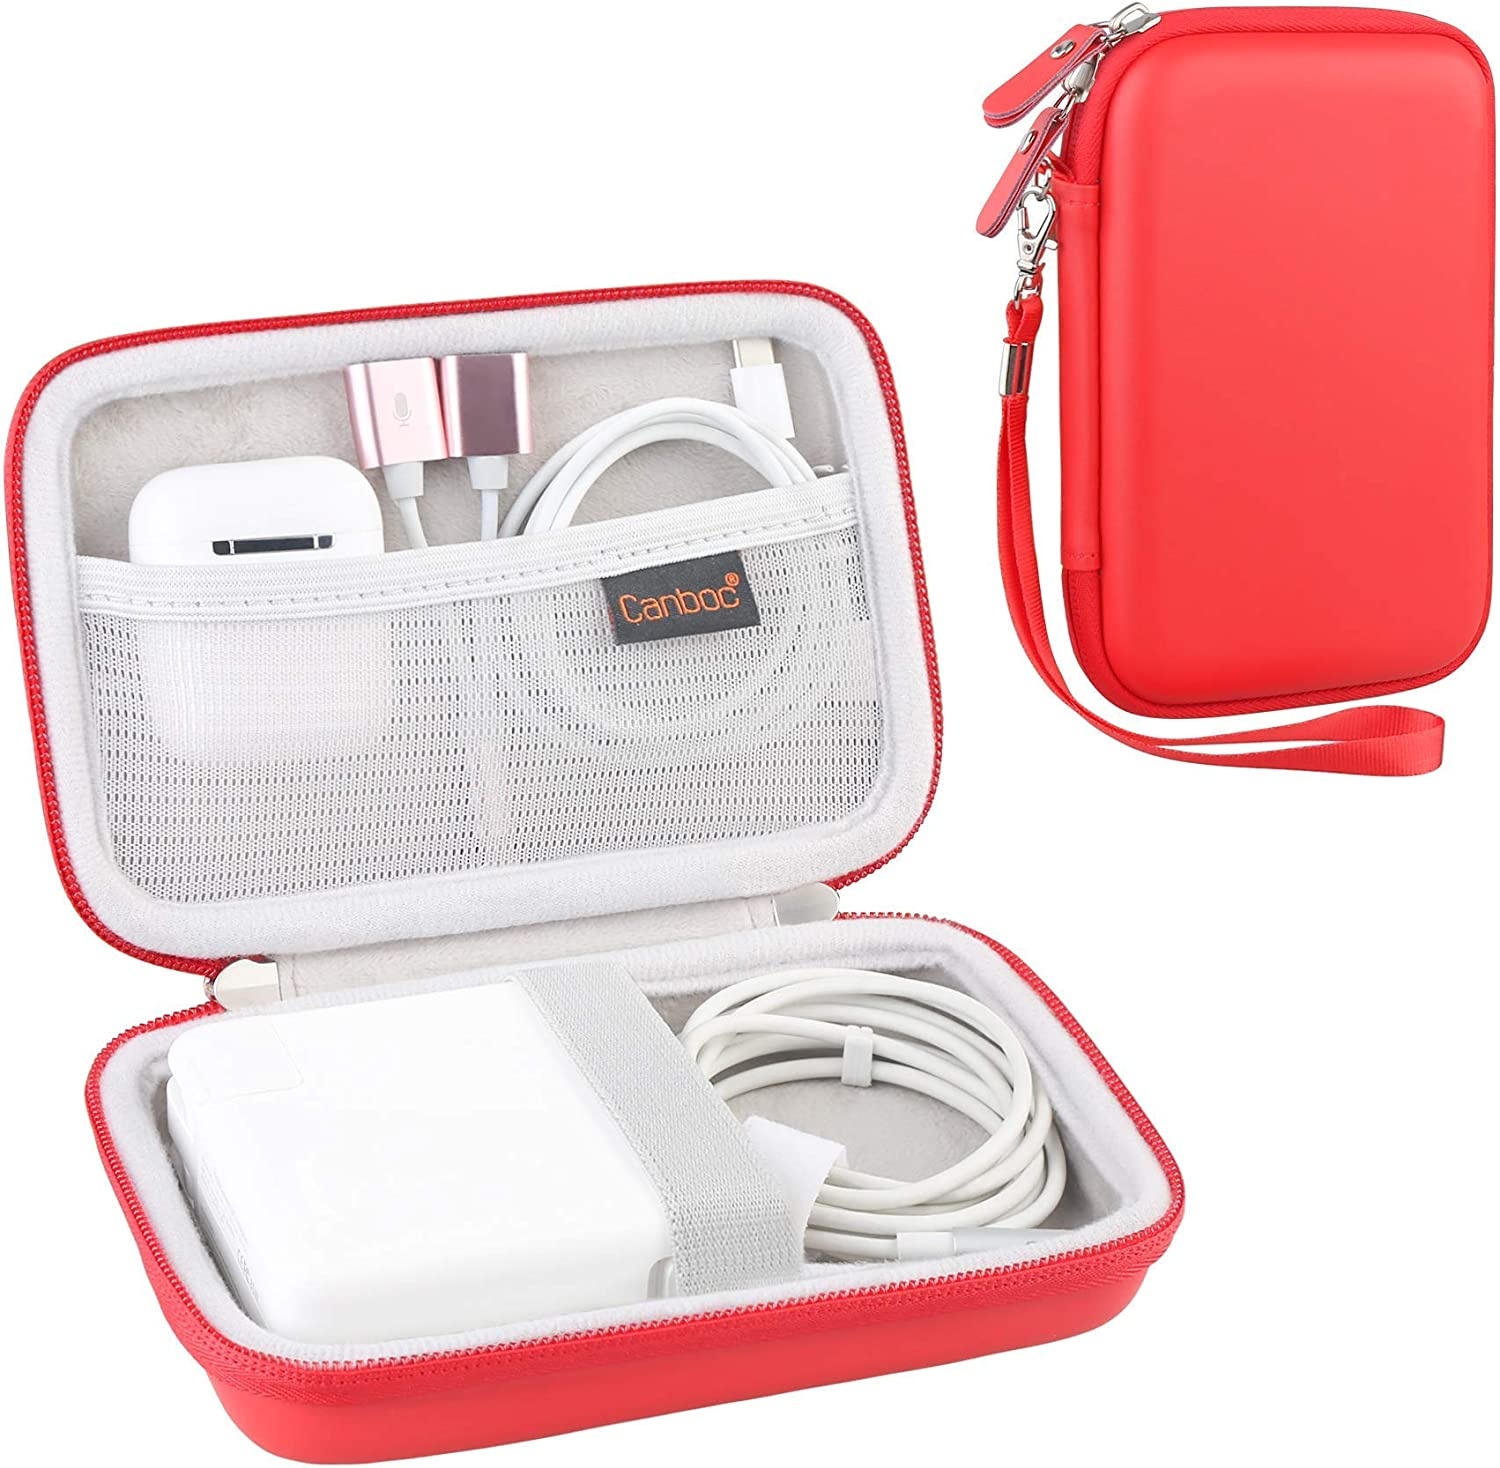 Canboc Carrying Case for MacBook Air Pro Charger MagSafe/MagSafe 2 Power Adapter, iPhone 12/12 Pro MagSafe Charger, USB C Hub, Type C Hub, USB Multiport Adapter, Hard EVA Shockproof Bag, Red